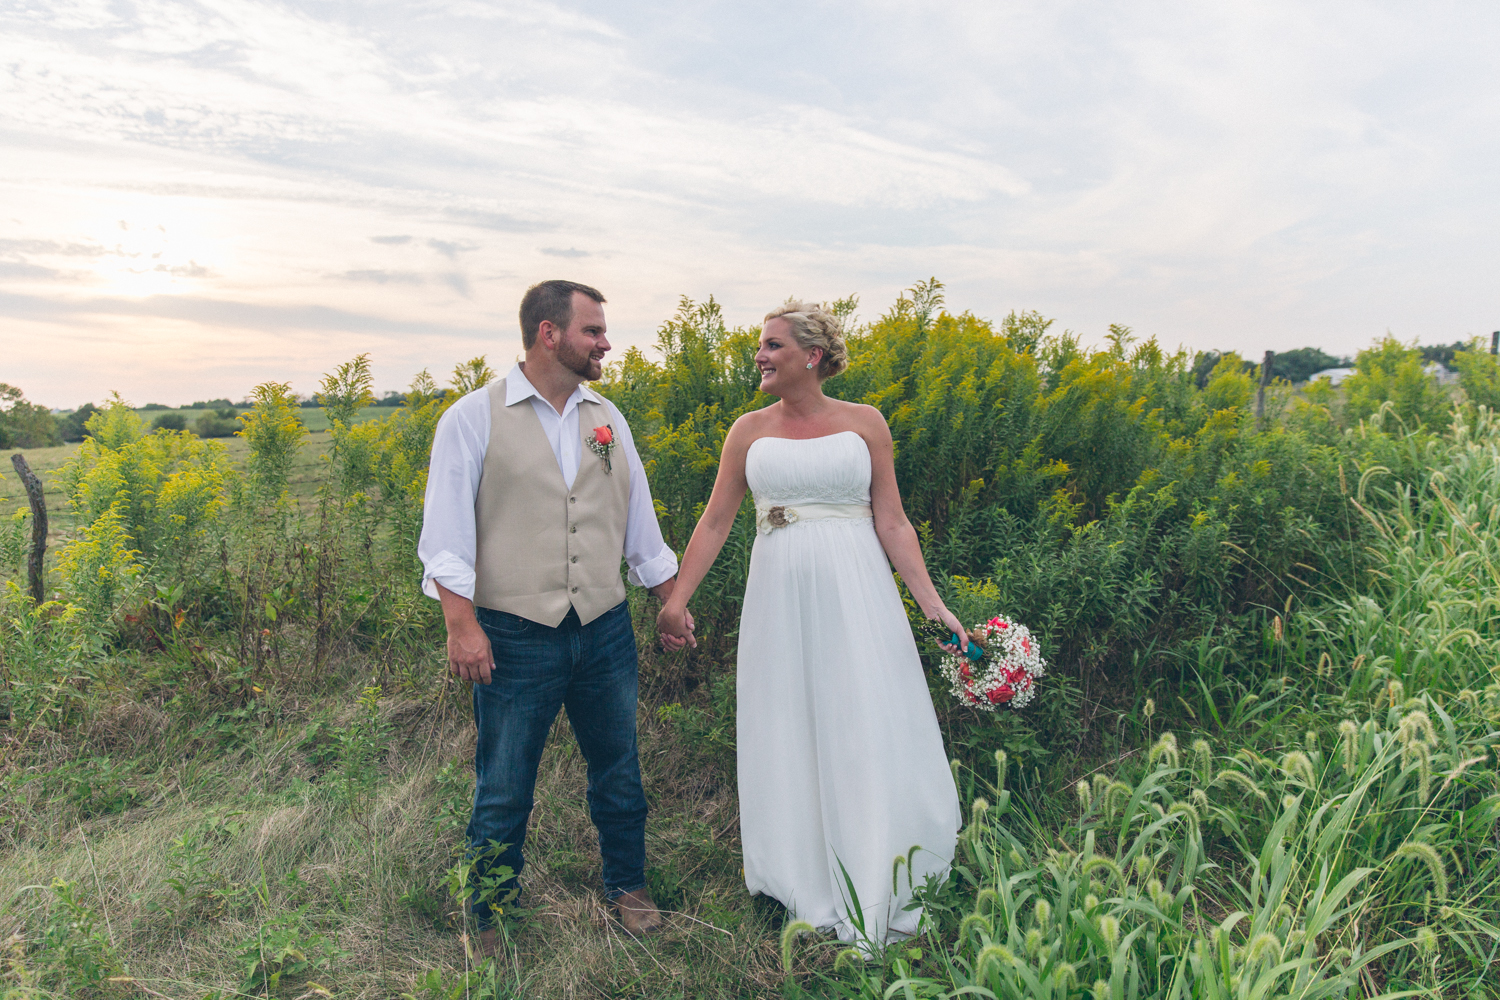 Erica + Bryan – Lawson, MO Wedding